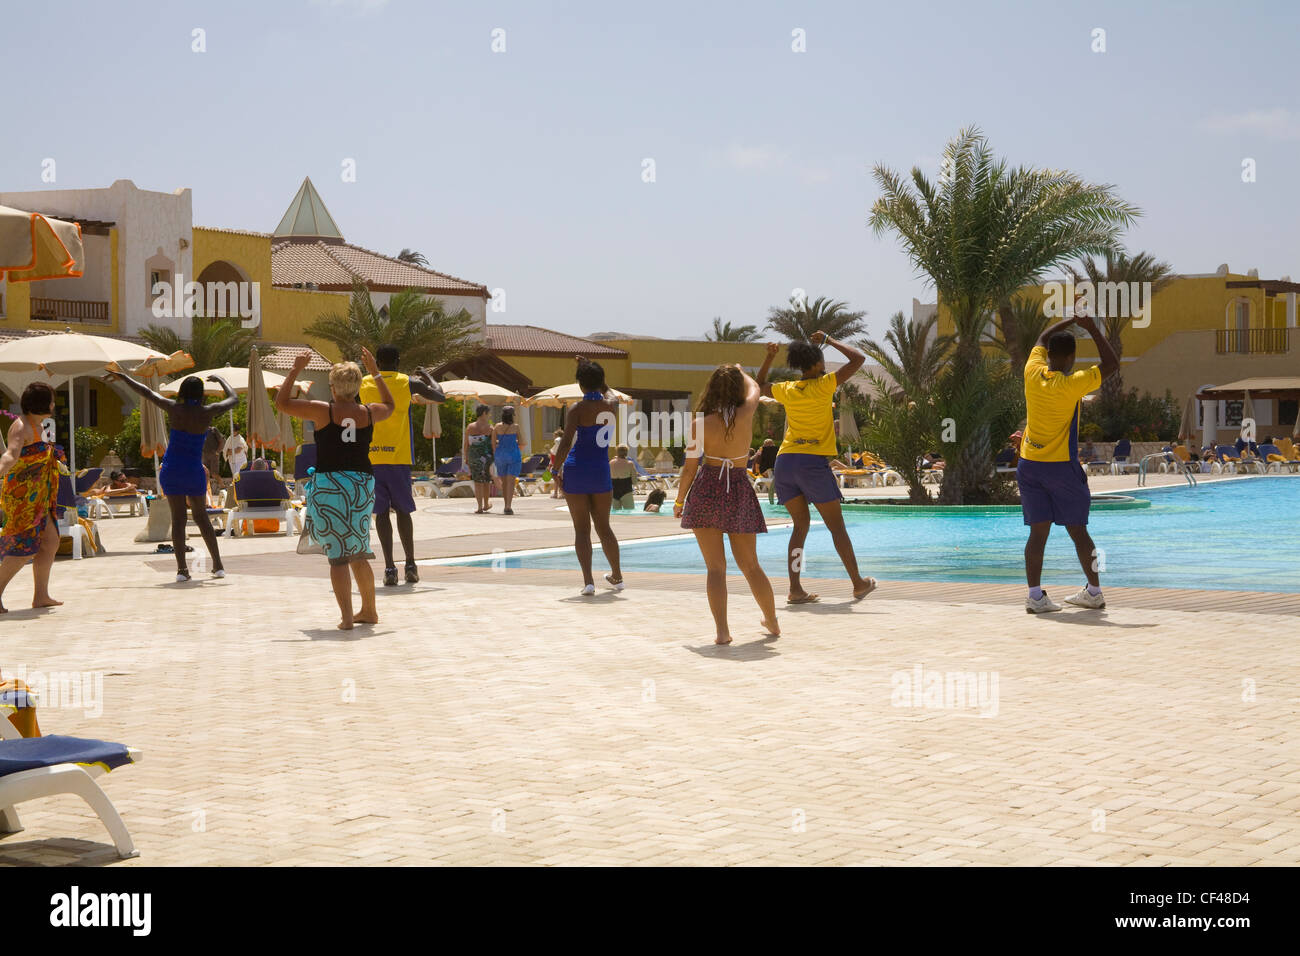 Rabil Boa Vista Cape Verde Islands Hotel entertainers leading a dance class poolside - Stock Image